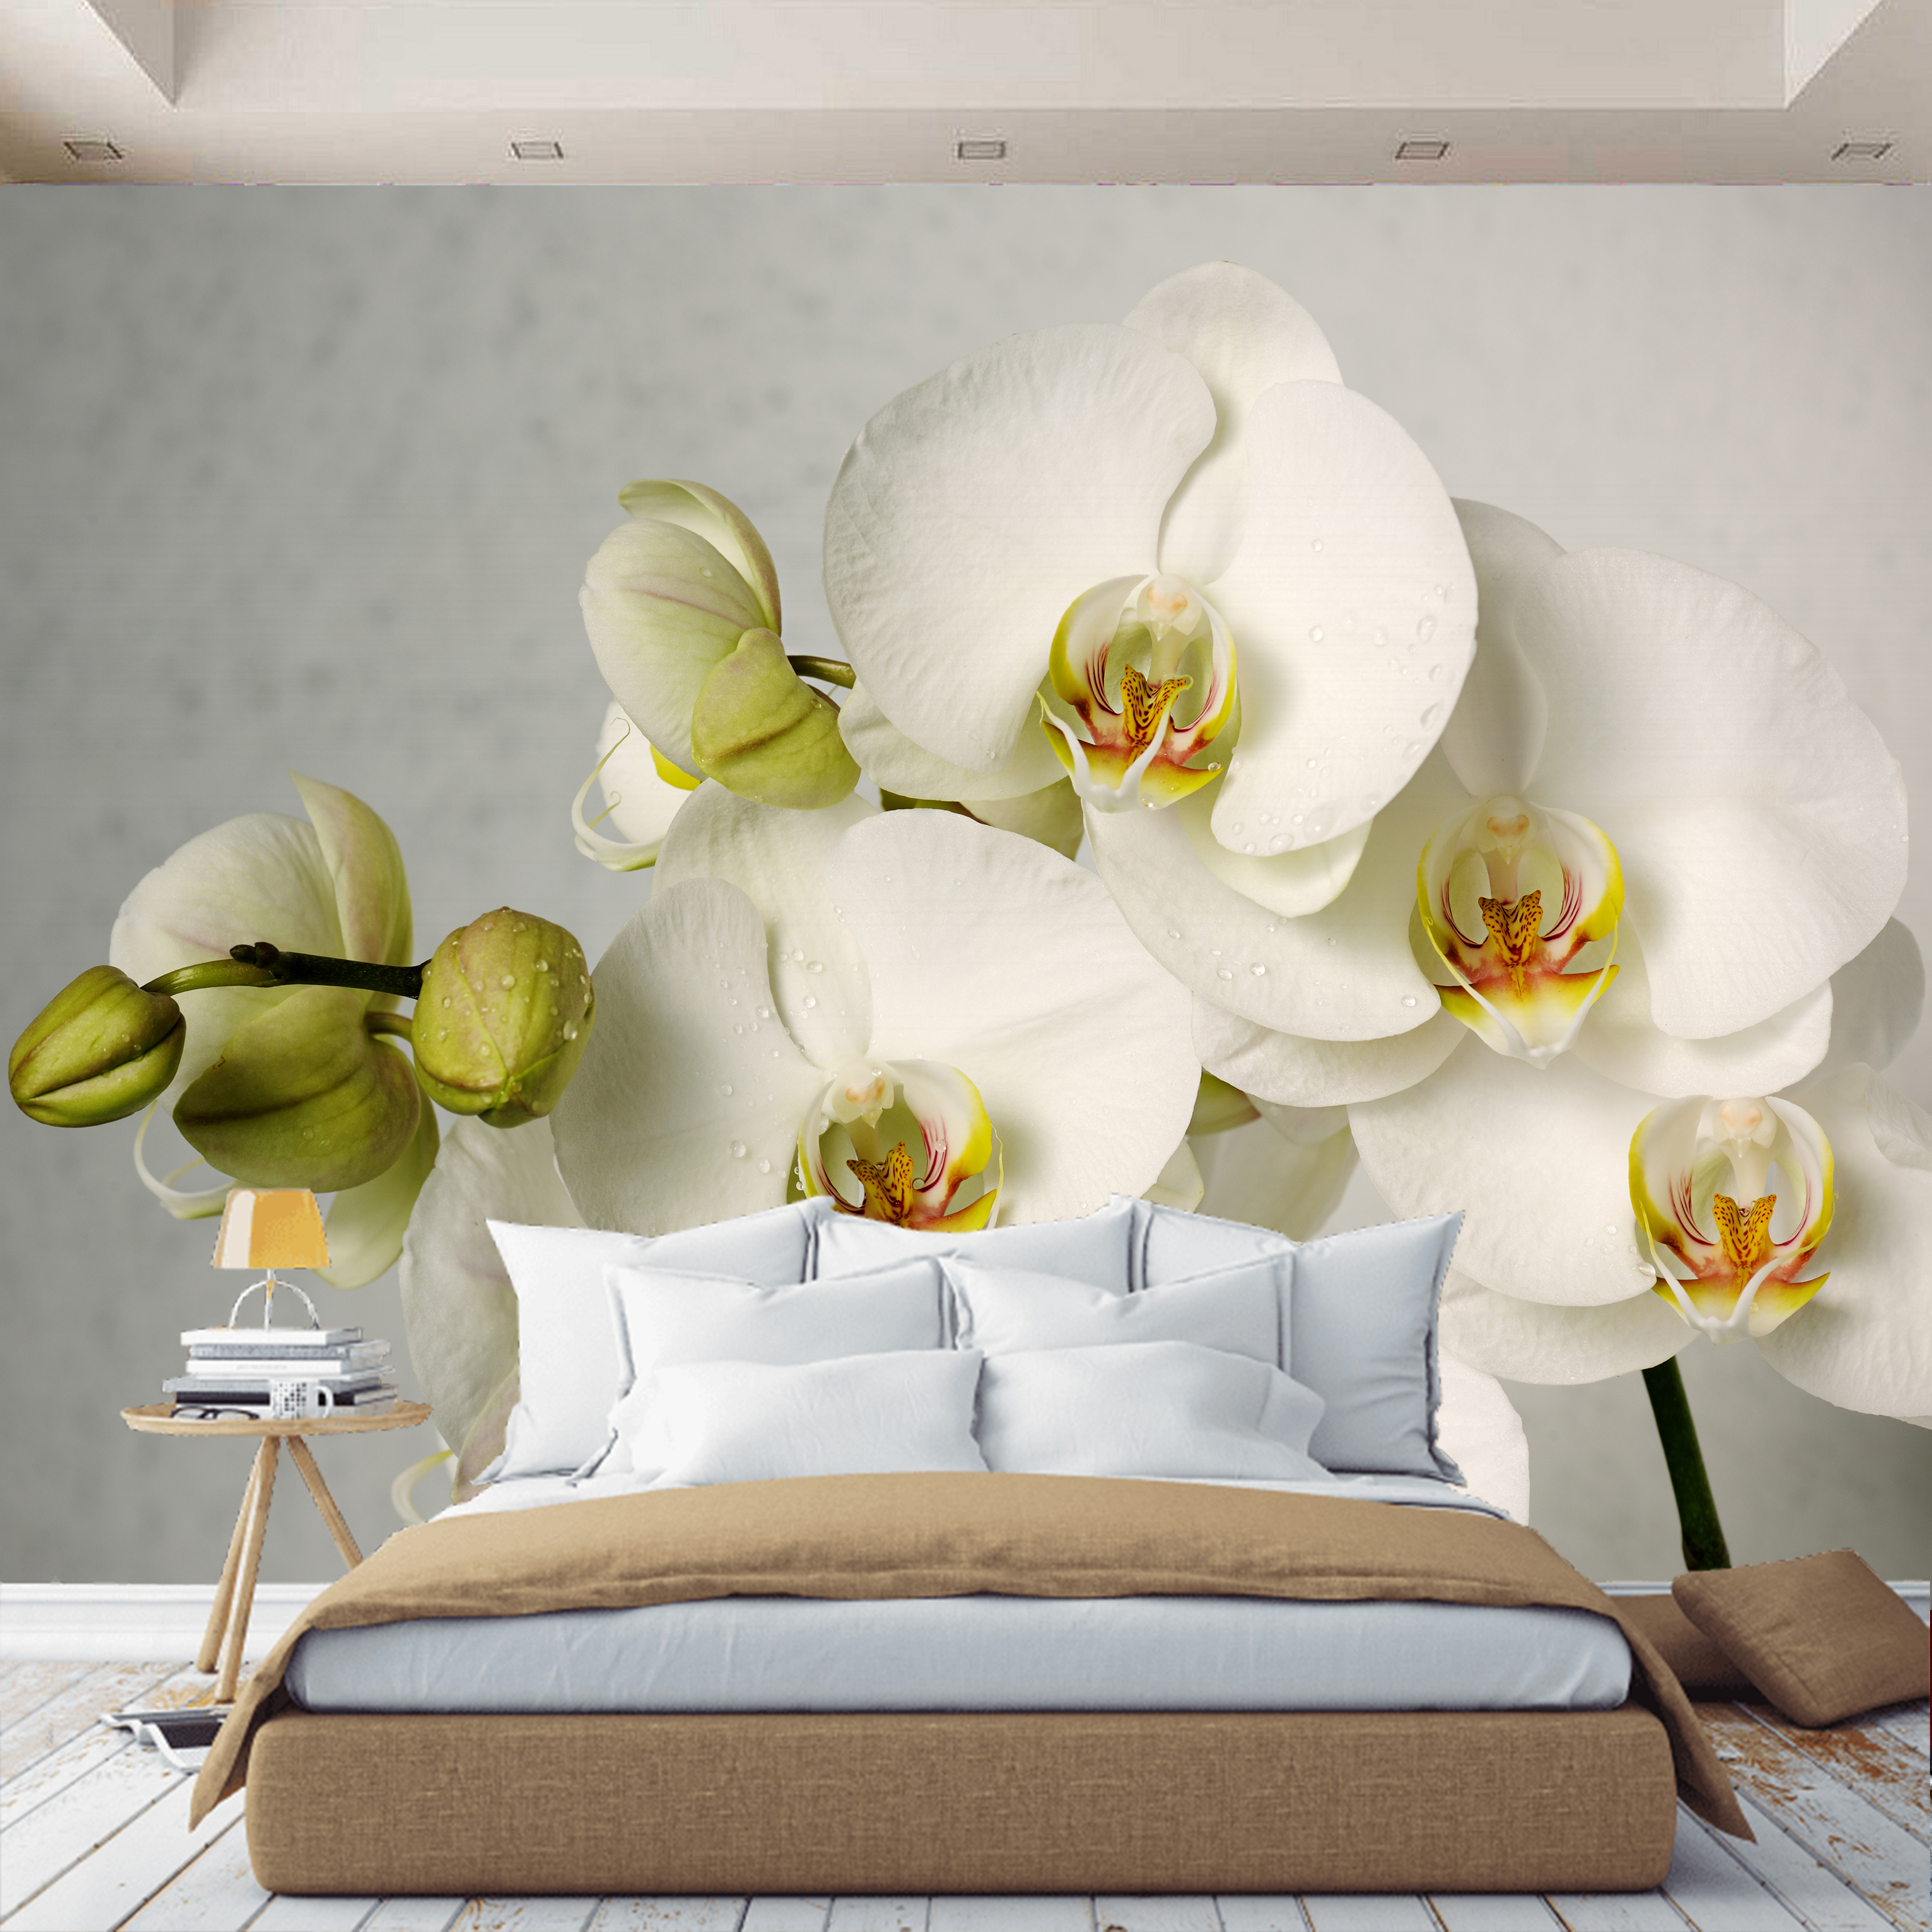 3D Photo Wallpaper Wall Paper Orchid Flower, Wallpaper Custom, Hall, Kitchen, Bedroom, Children's, Photo Wallpaper Enhance Space